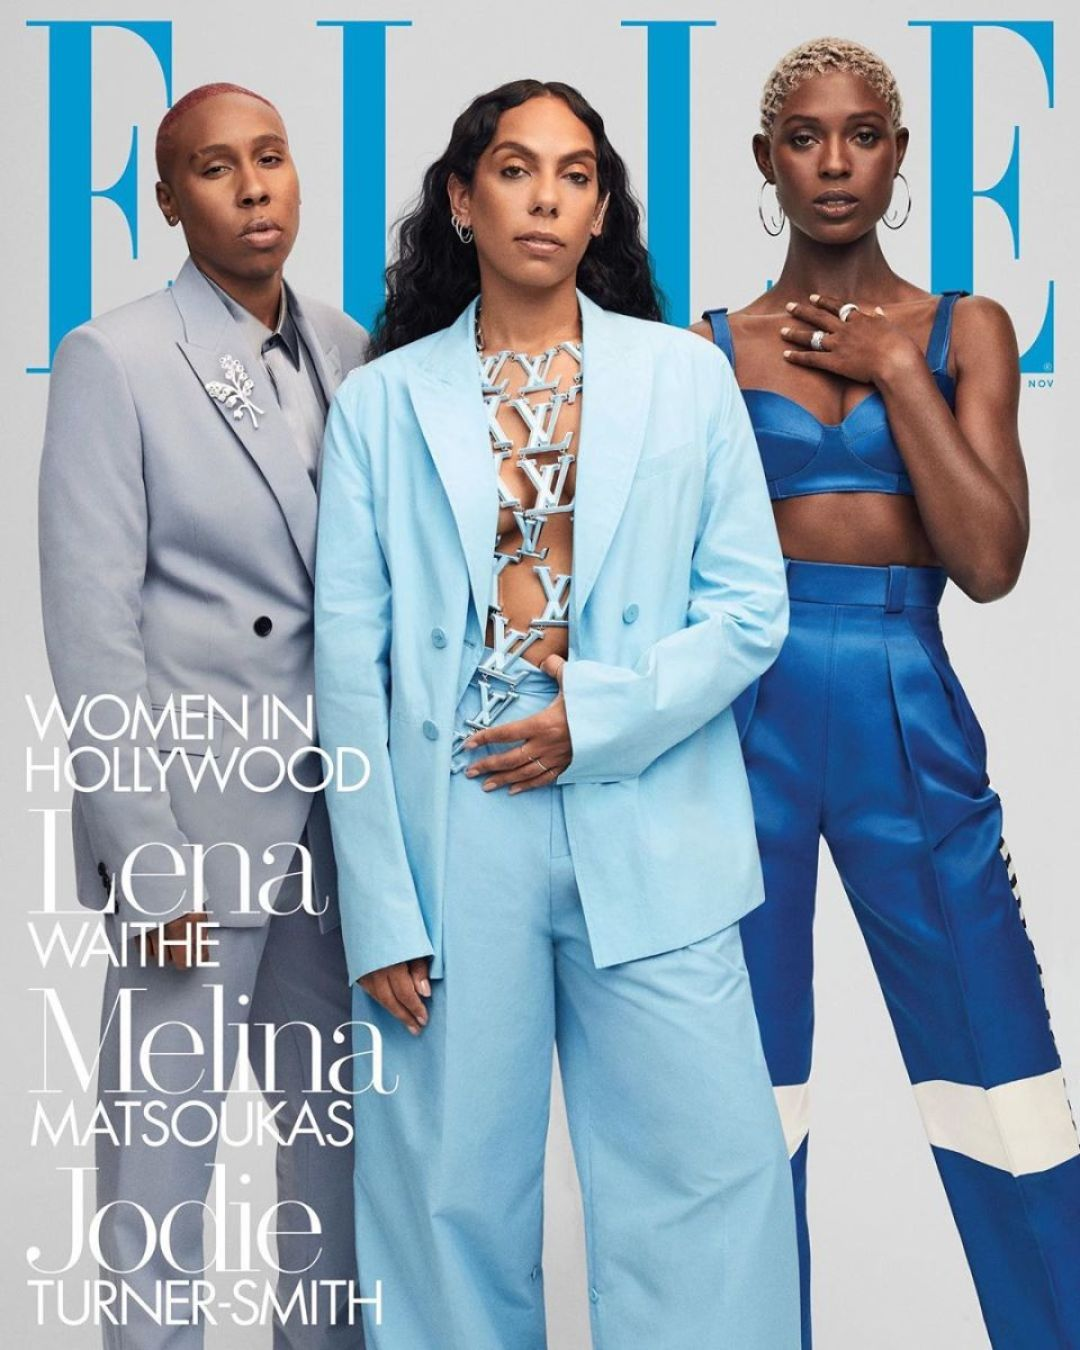 """Lena Waithe, Melina Matsouka and Jodie Turner-Smith for the """"Elle'"""" Women in Hollywood issue."""